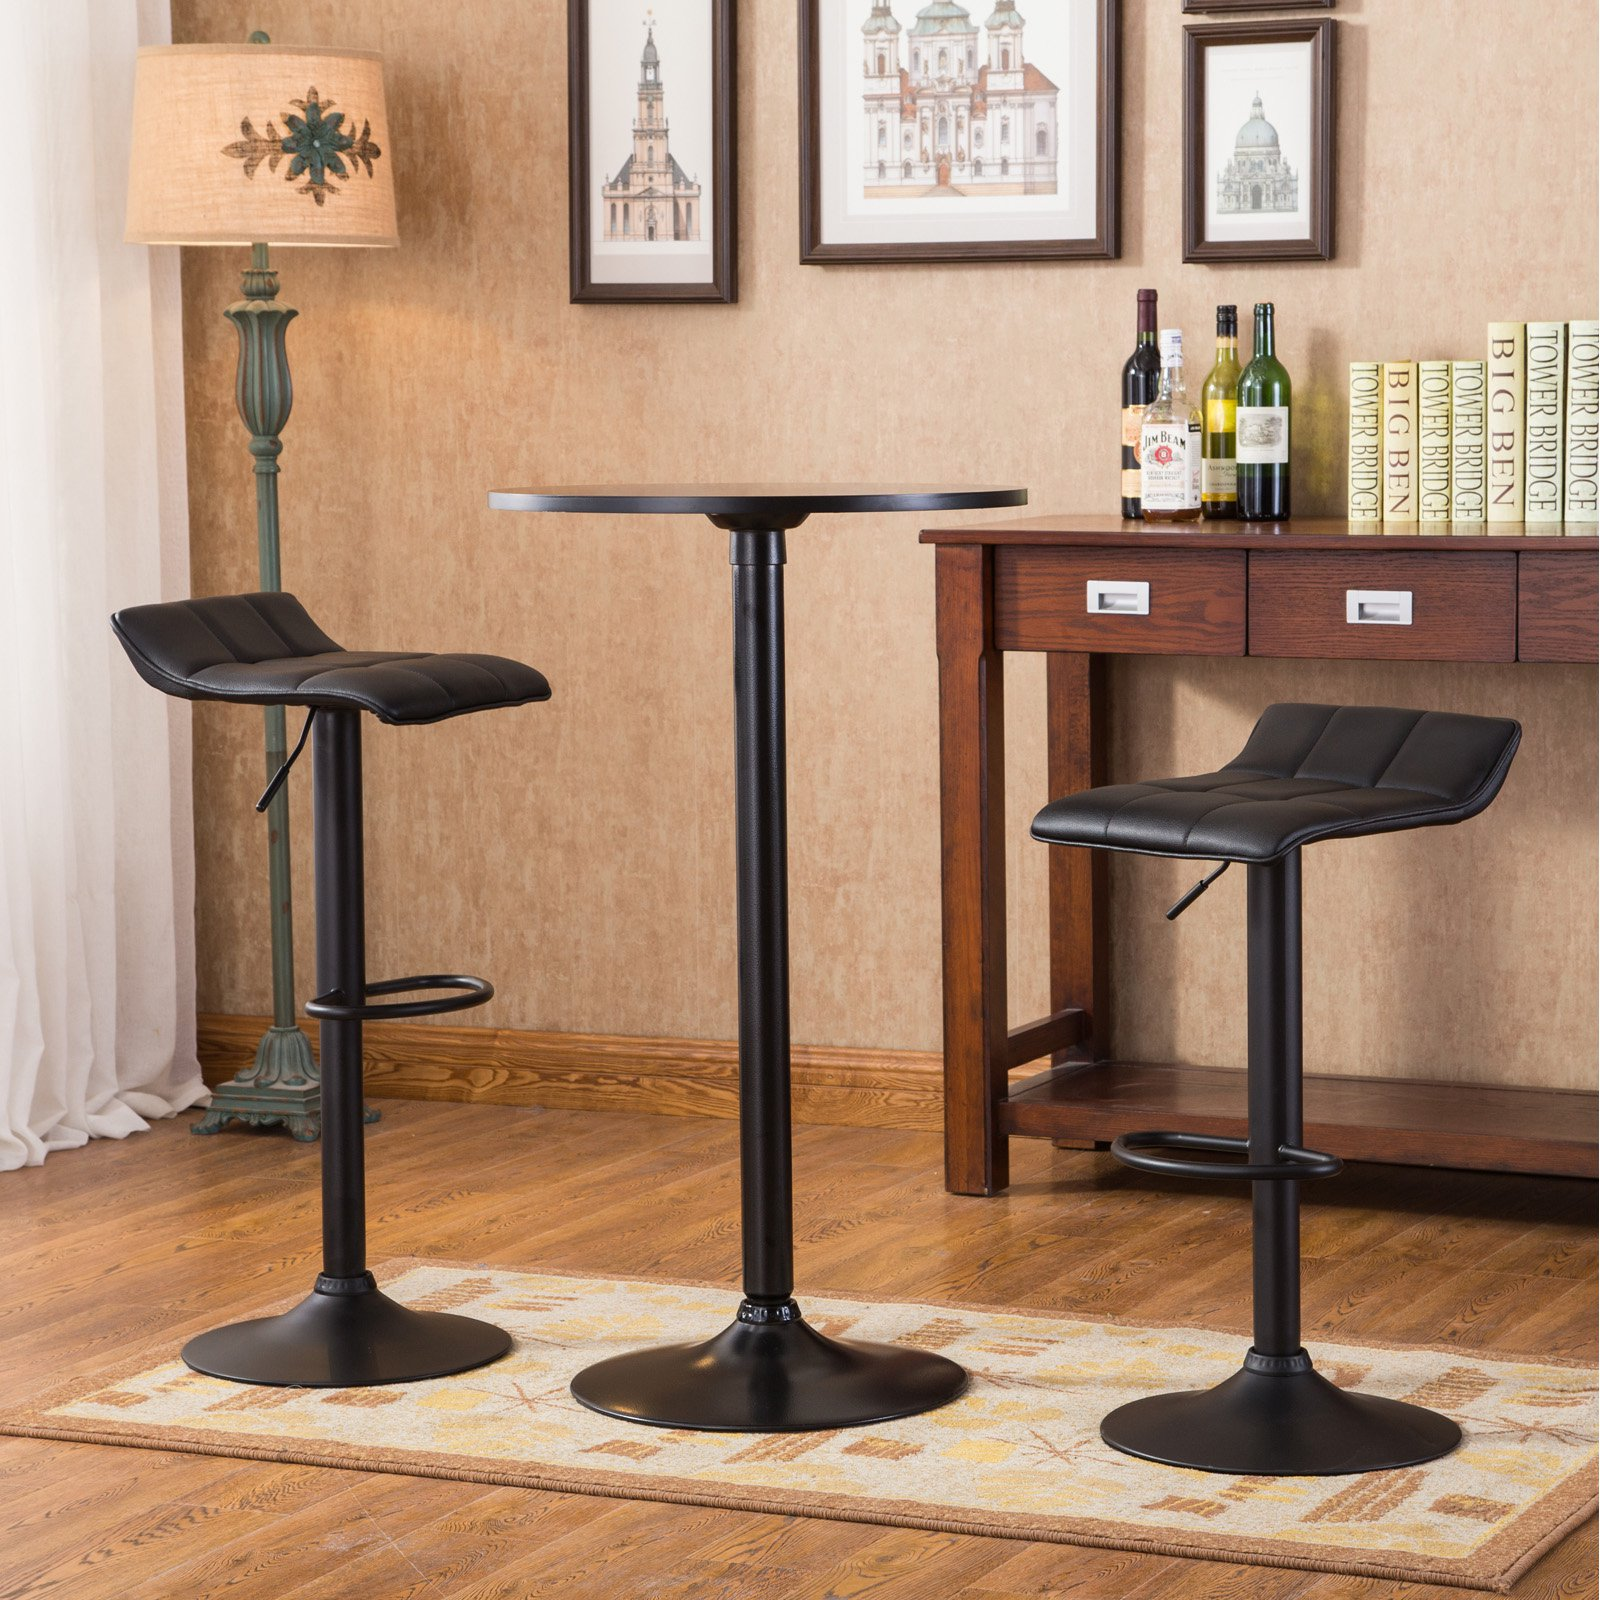 Roundhill Furniture Belham Black Round Top with Black Leg And Base Metal Bar Table and 2 Swivel Black Bonded Leather Adjustable Bar Stool Bar Sets